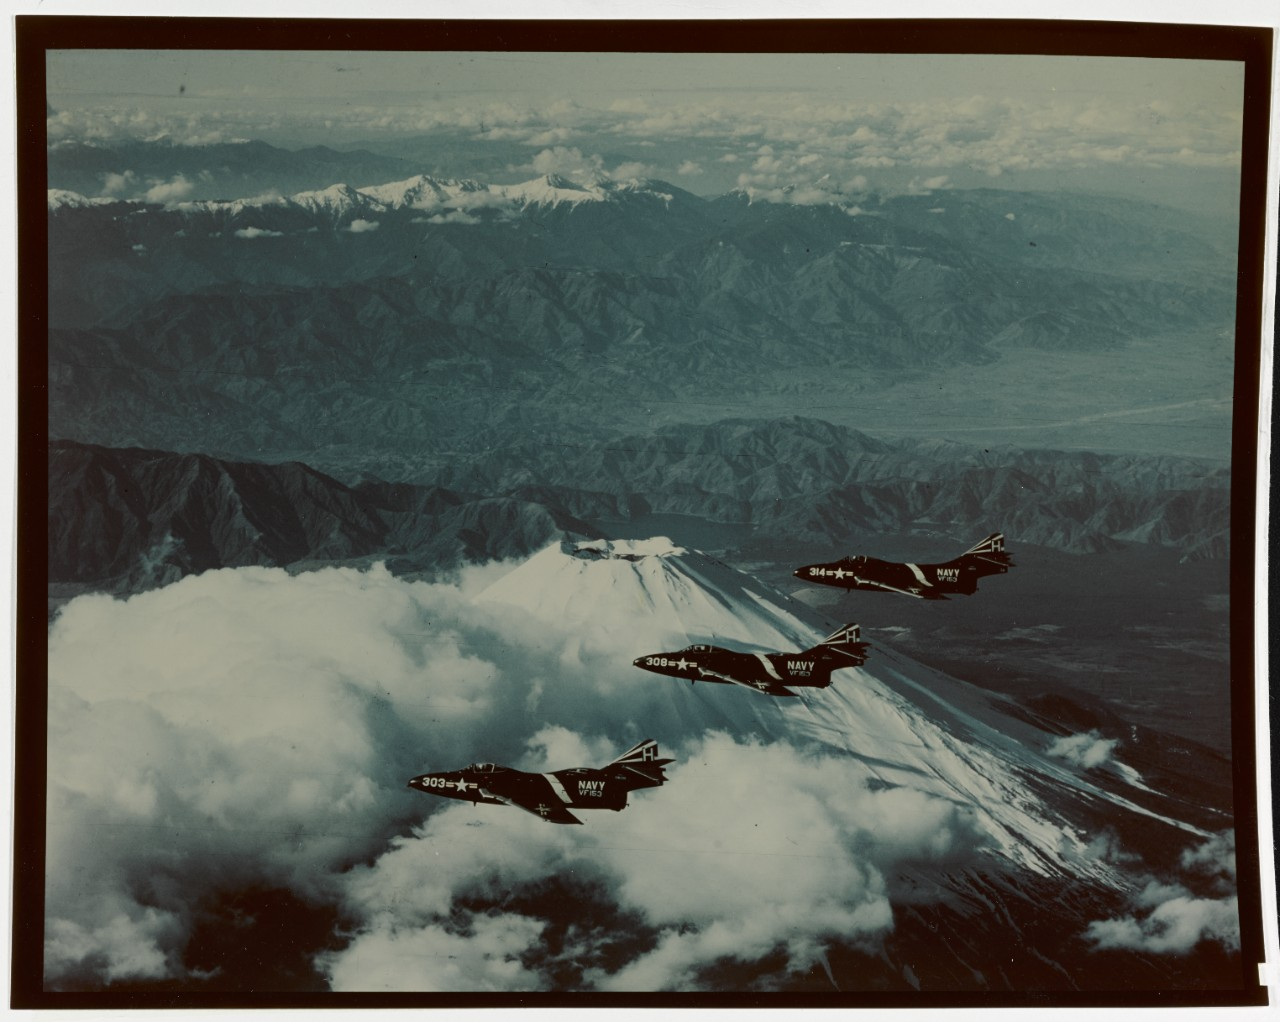 Grumman F9F-6 Cougar Jet Fighters Fly in formation over Mount Fuji, Japan, 12 December 1954. They are from USS YORKTOWN's (CVA-10), VF -153. Plane in foreground is BU 128209. 80-G-K- 17821